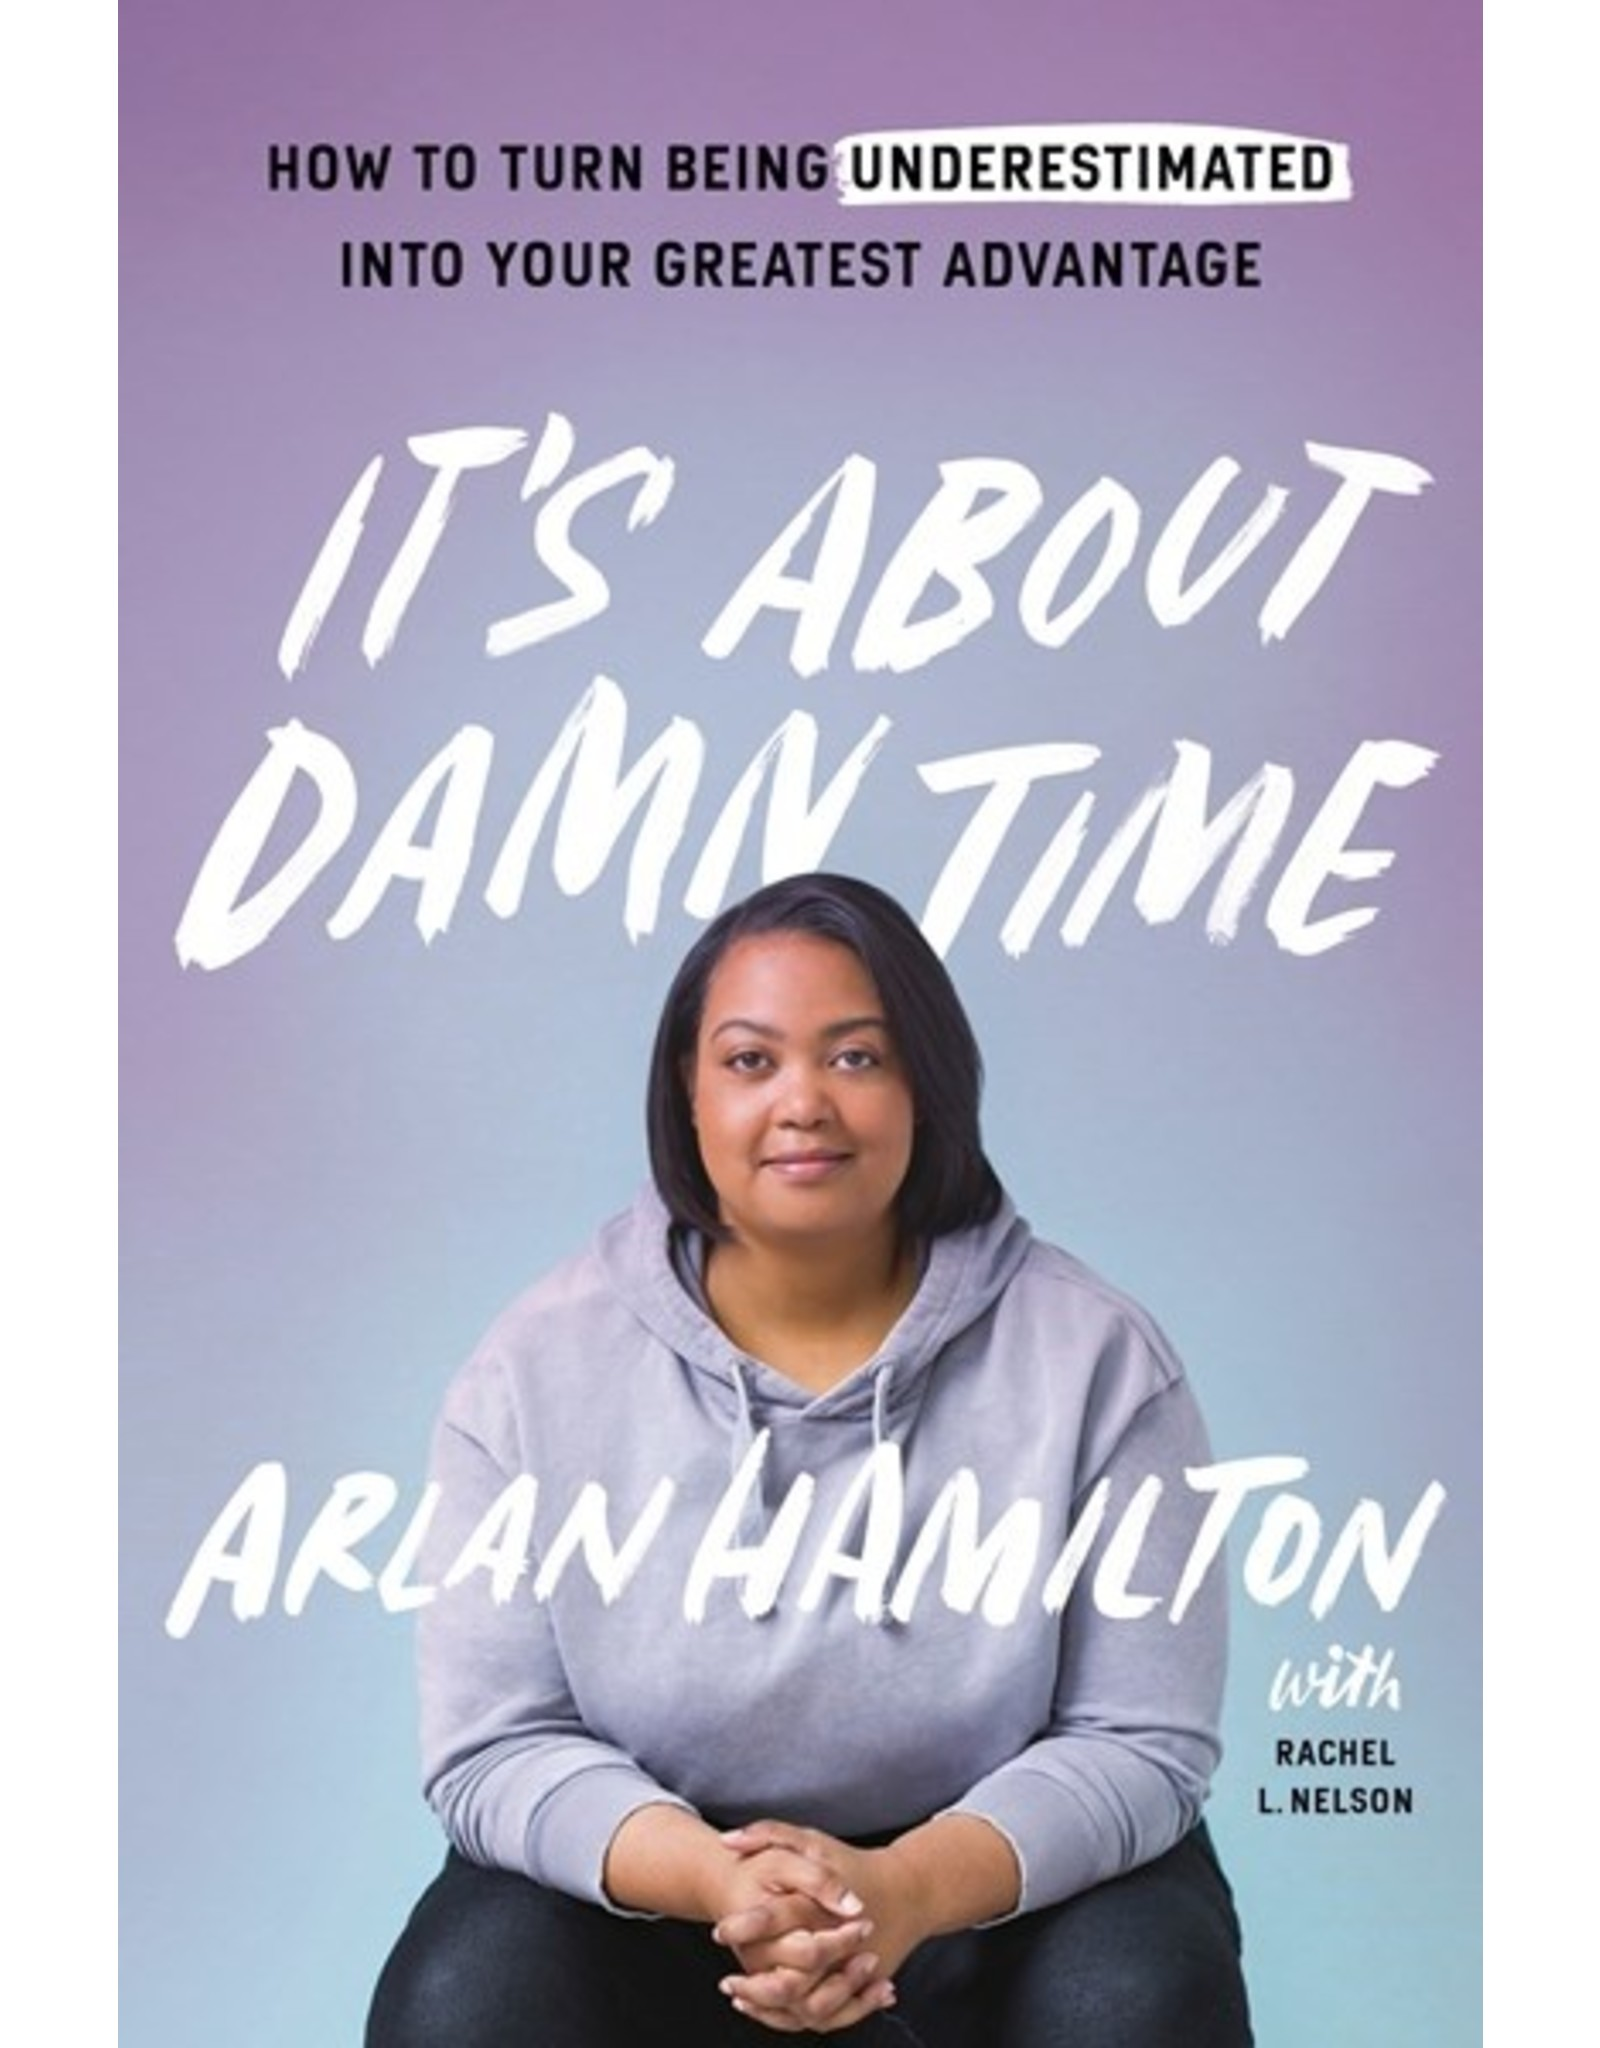 Books It's About Damn Time : How to Turn Being Underestimated into Your Greatest Advantage